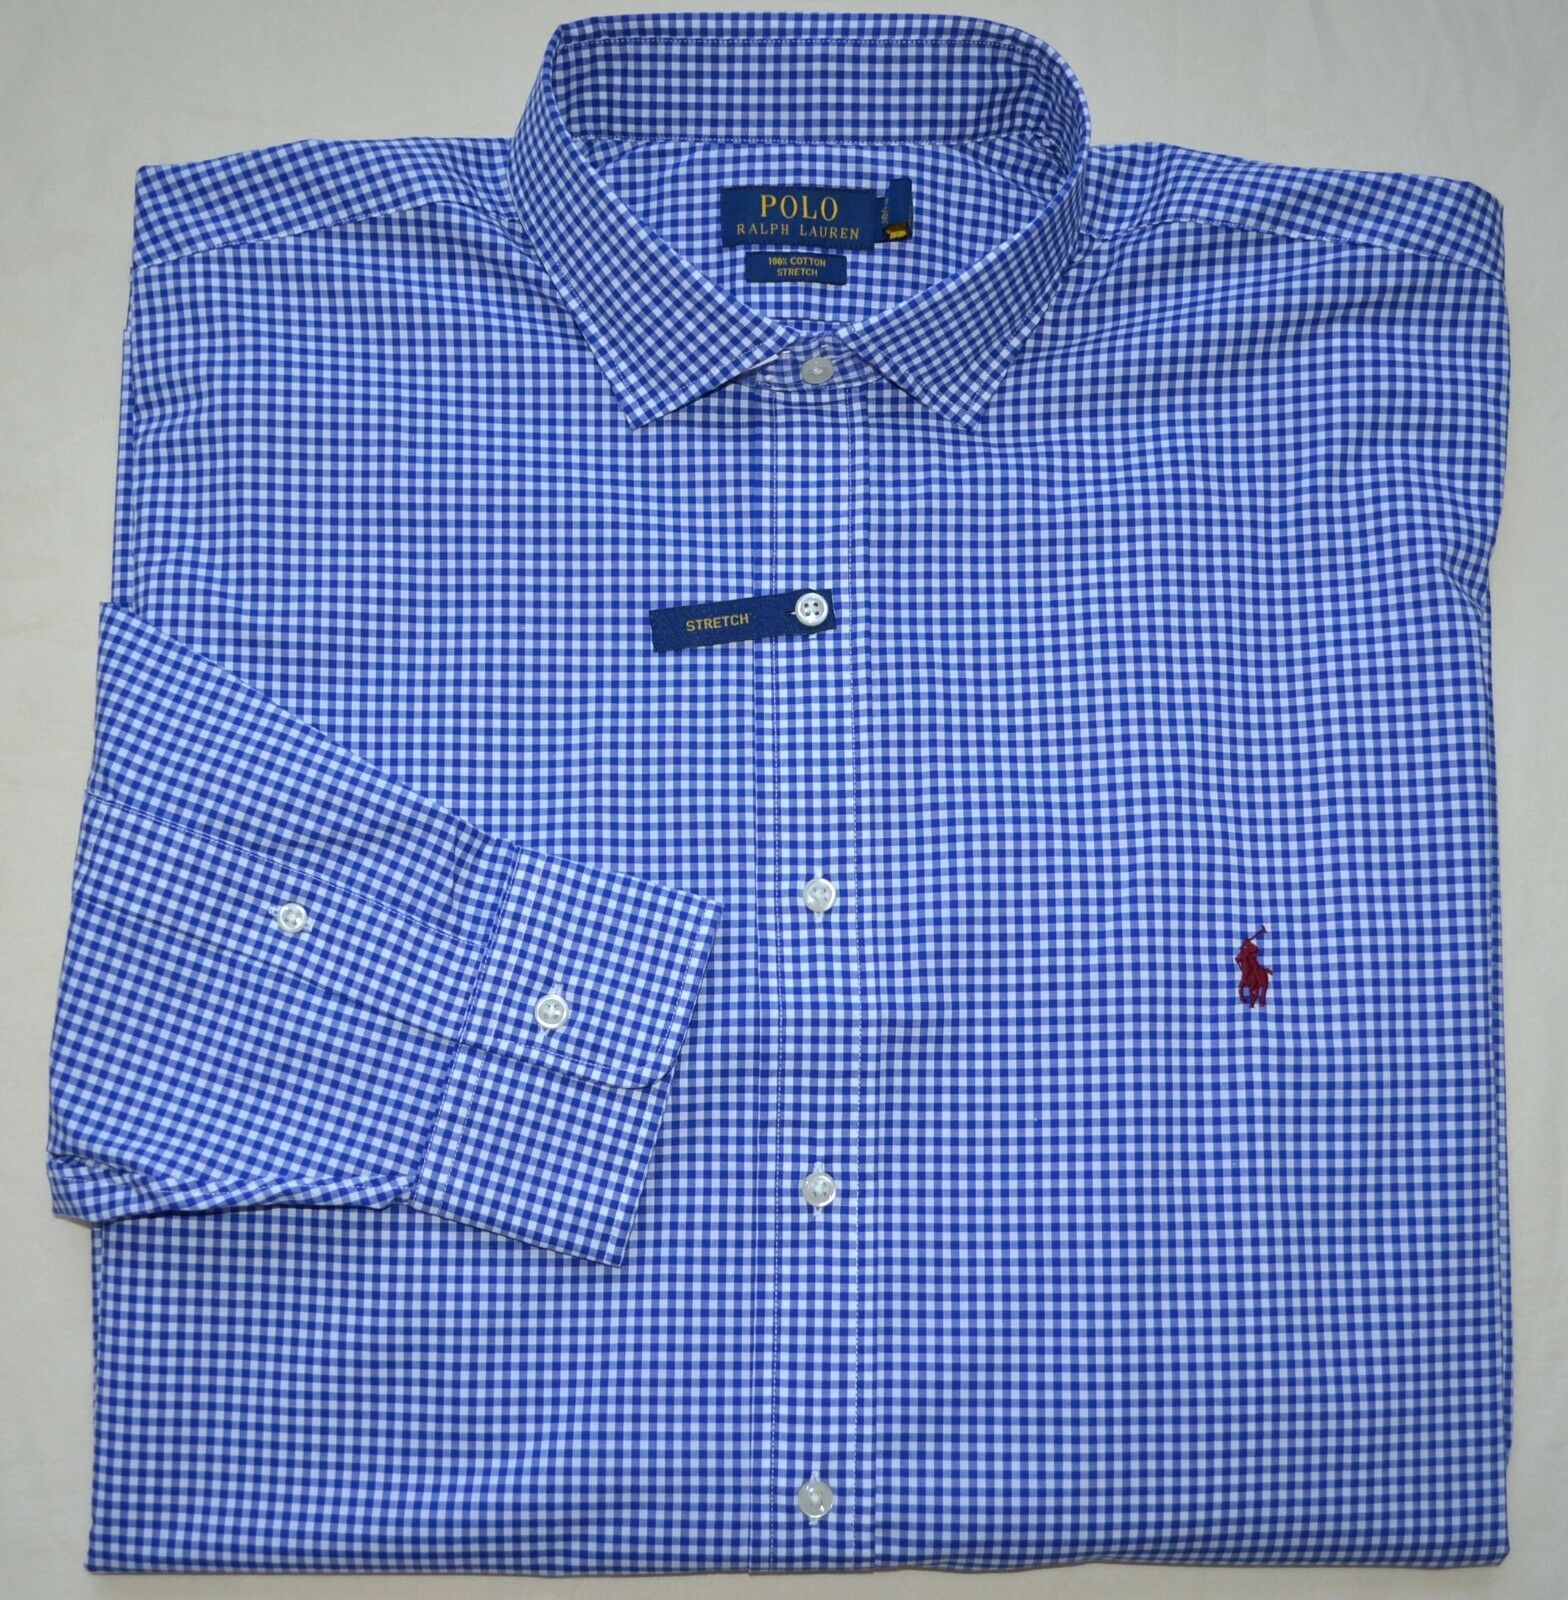 New 2XLT 2XL TALL 2XT POLO RALPH LAUREN Men button down dress shirt bluee gingham